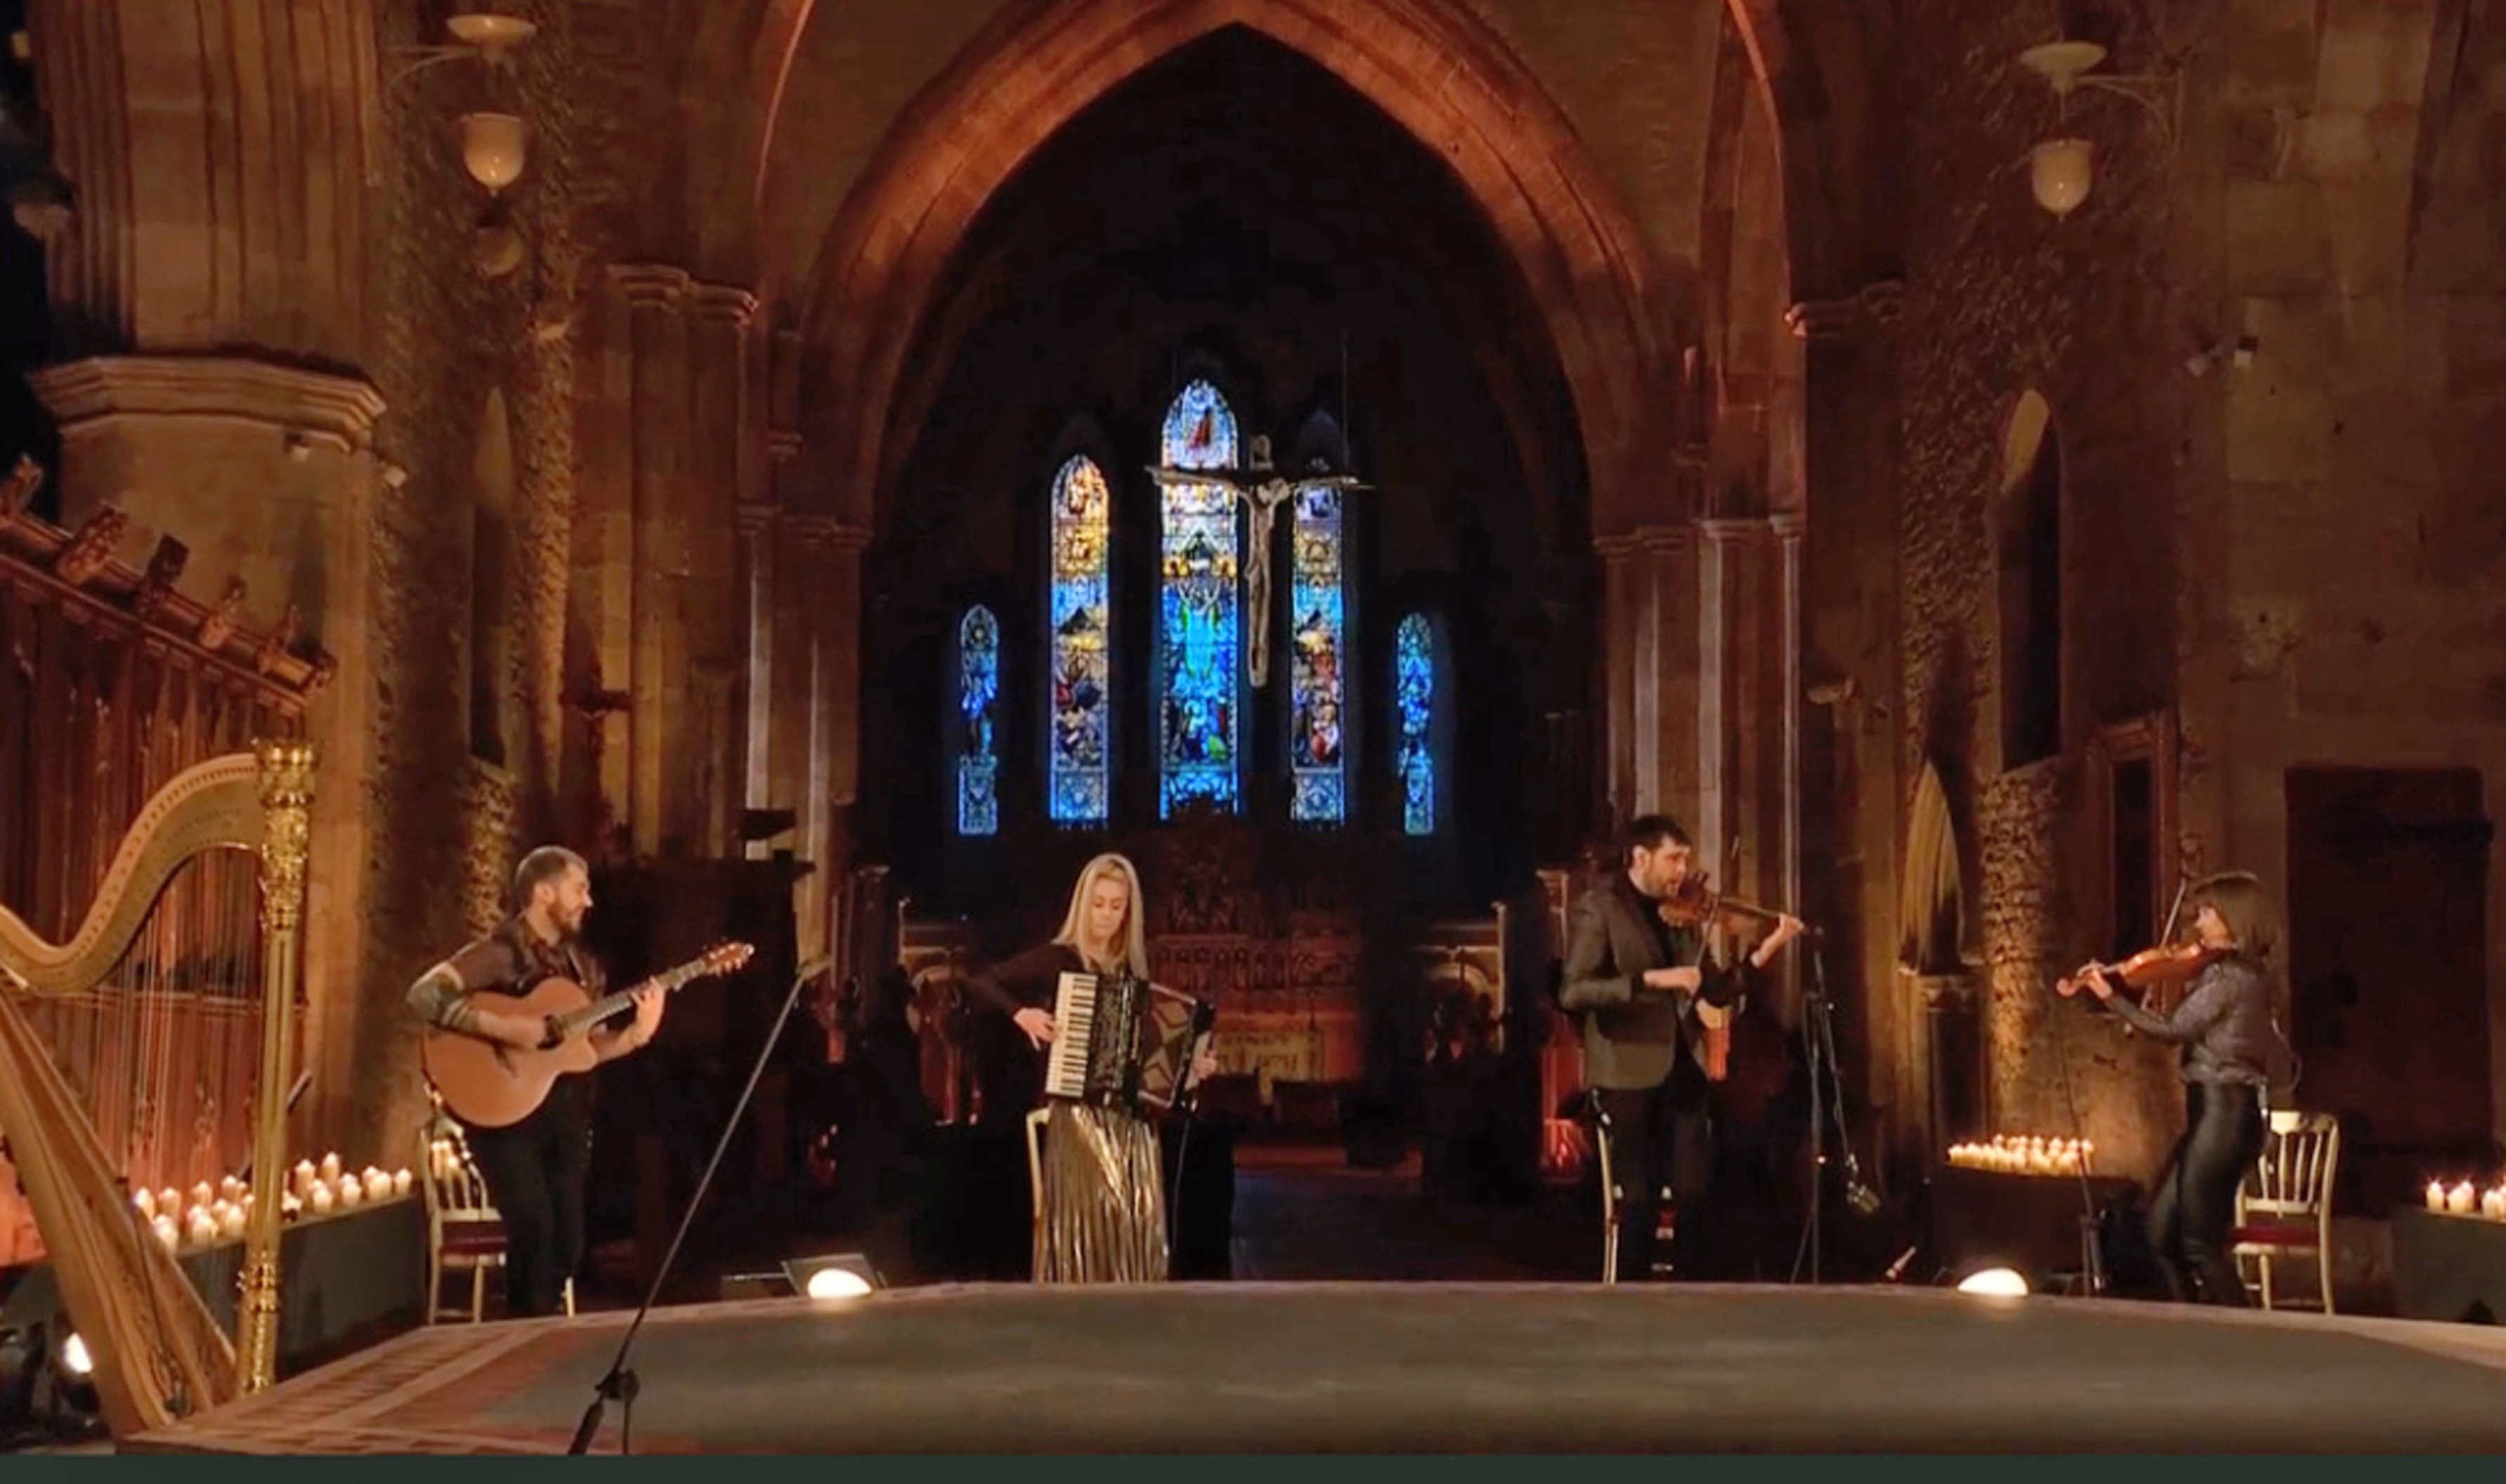 Calan playing at Brecon Cathedral for the Metropolitan Opera